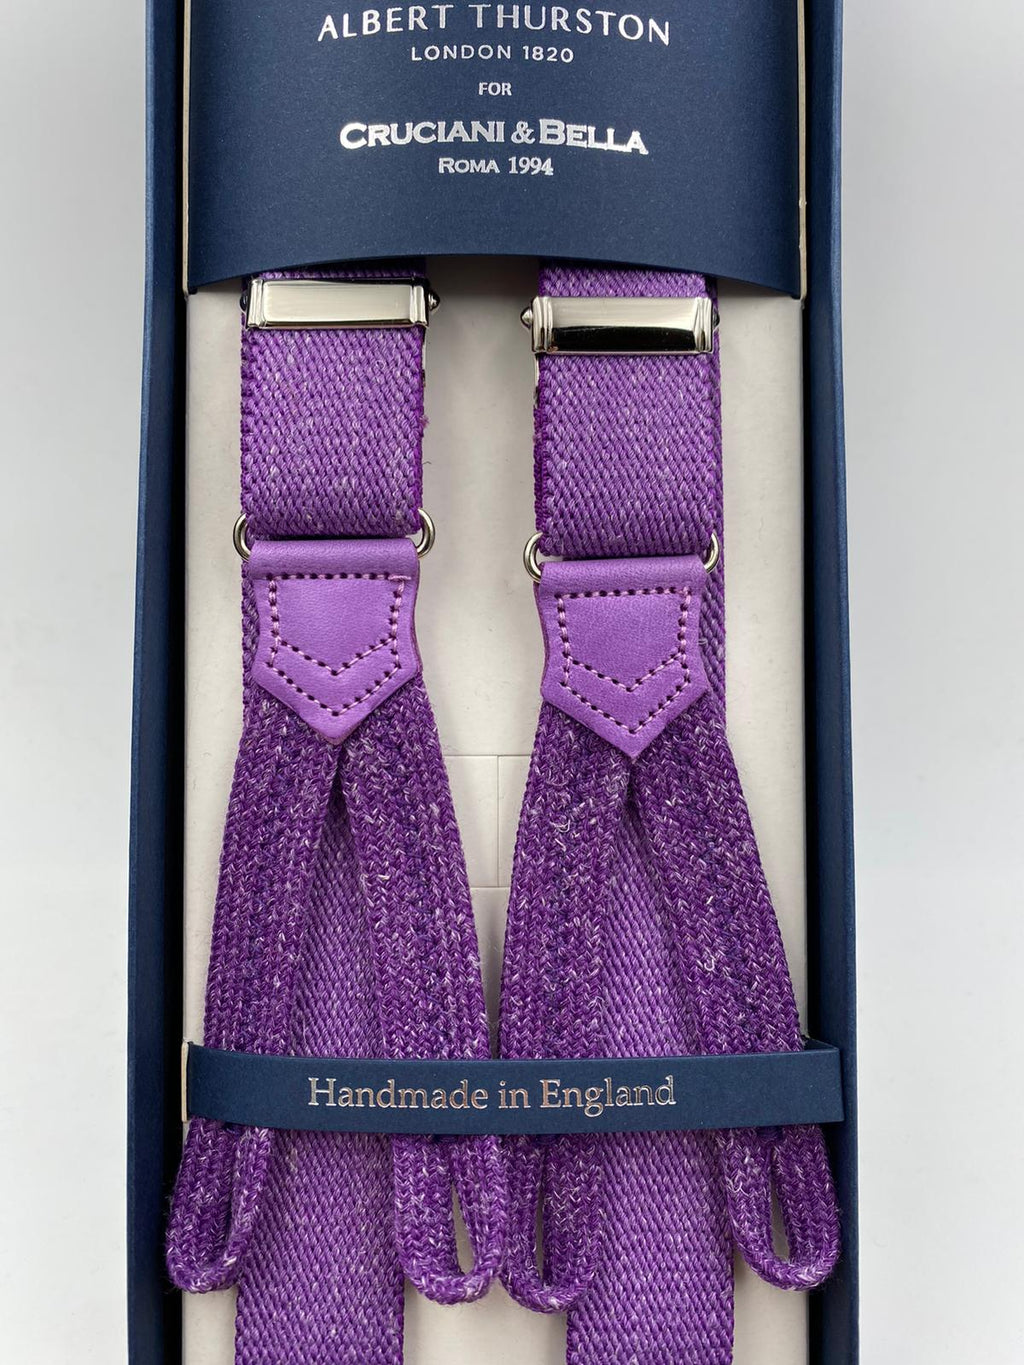 Albert Thurston for Cruciani & Bella Made in England Adjustable Sizing 25 mm elastic braces Purple Plain Braid ends Y-Shaped Nickel Fittings Size: L #4897